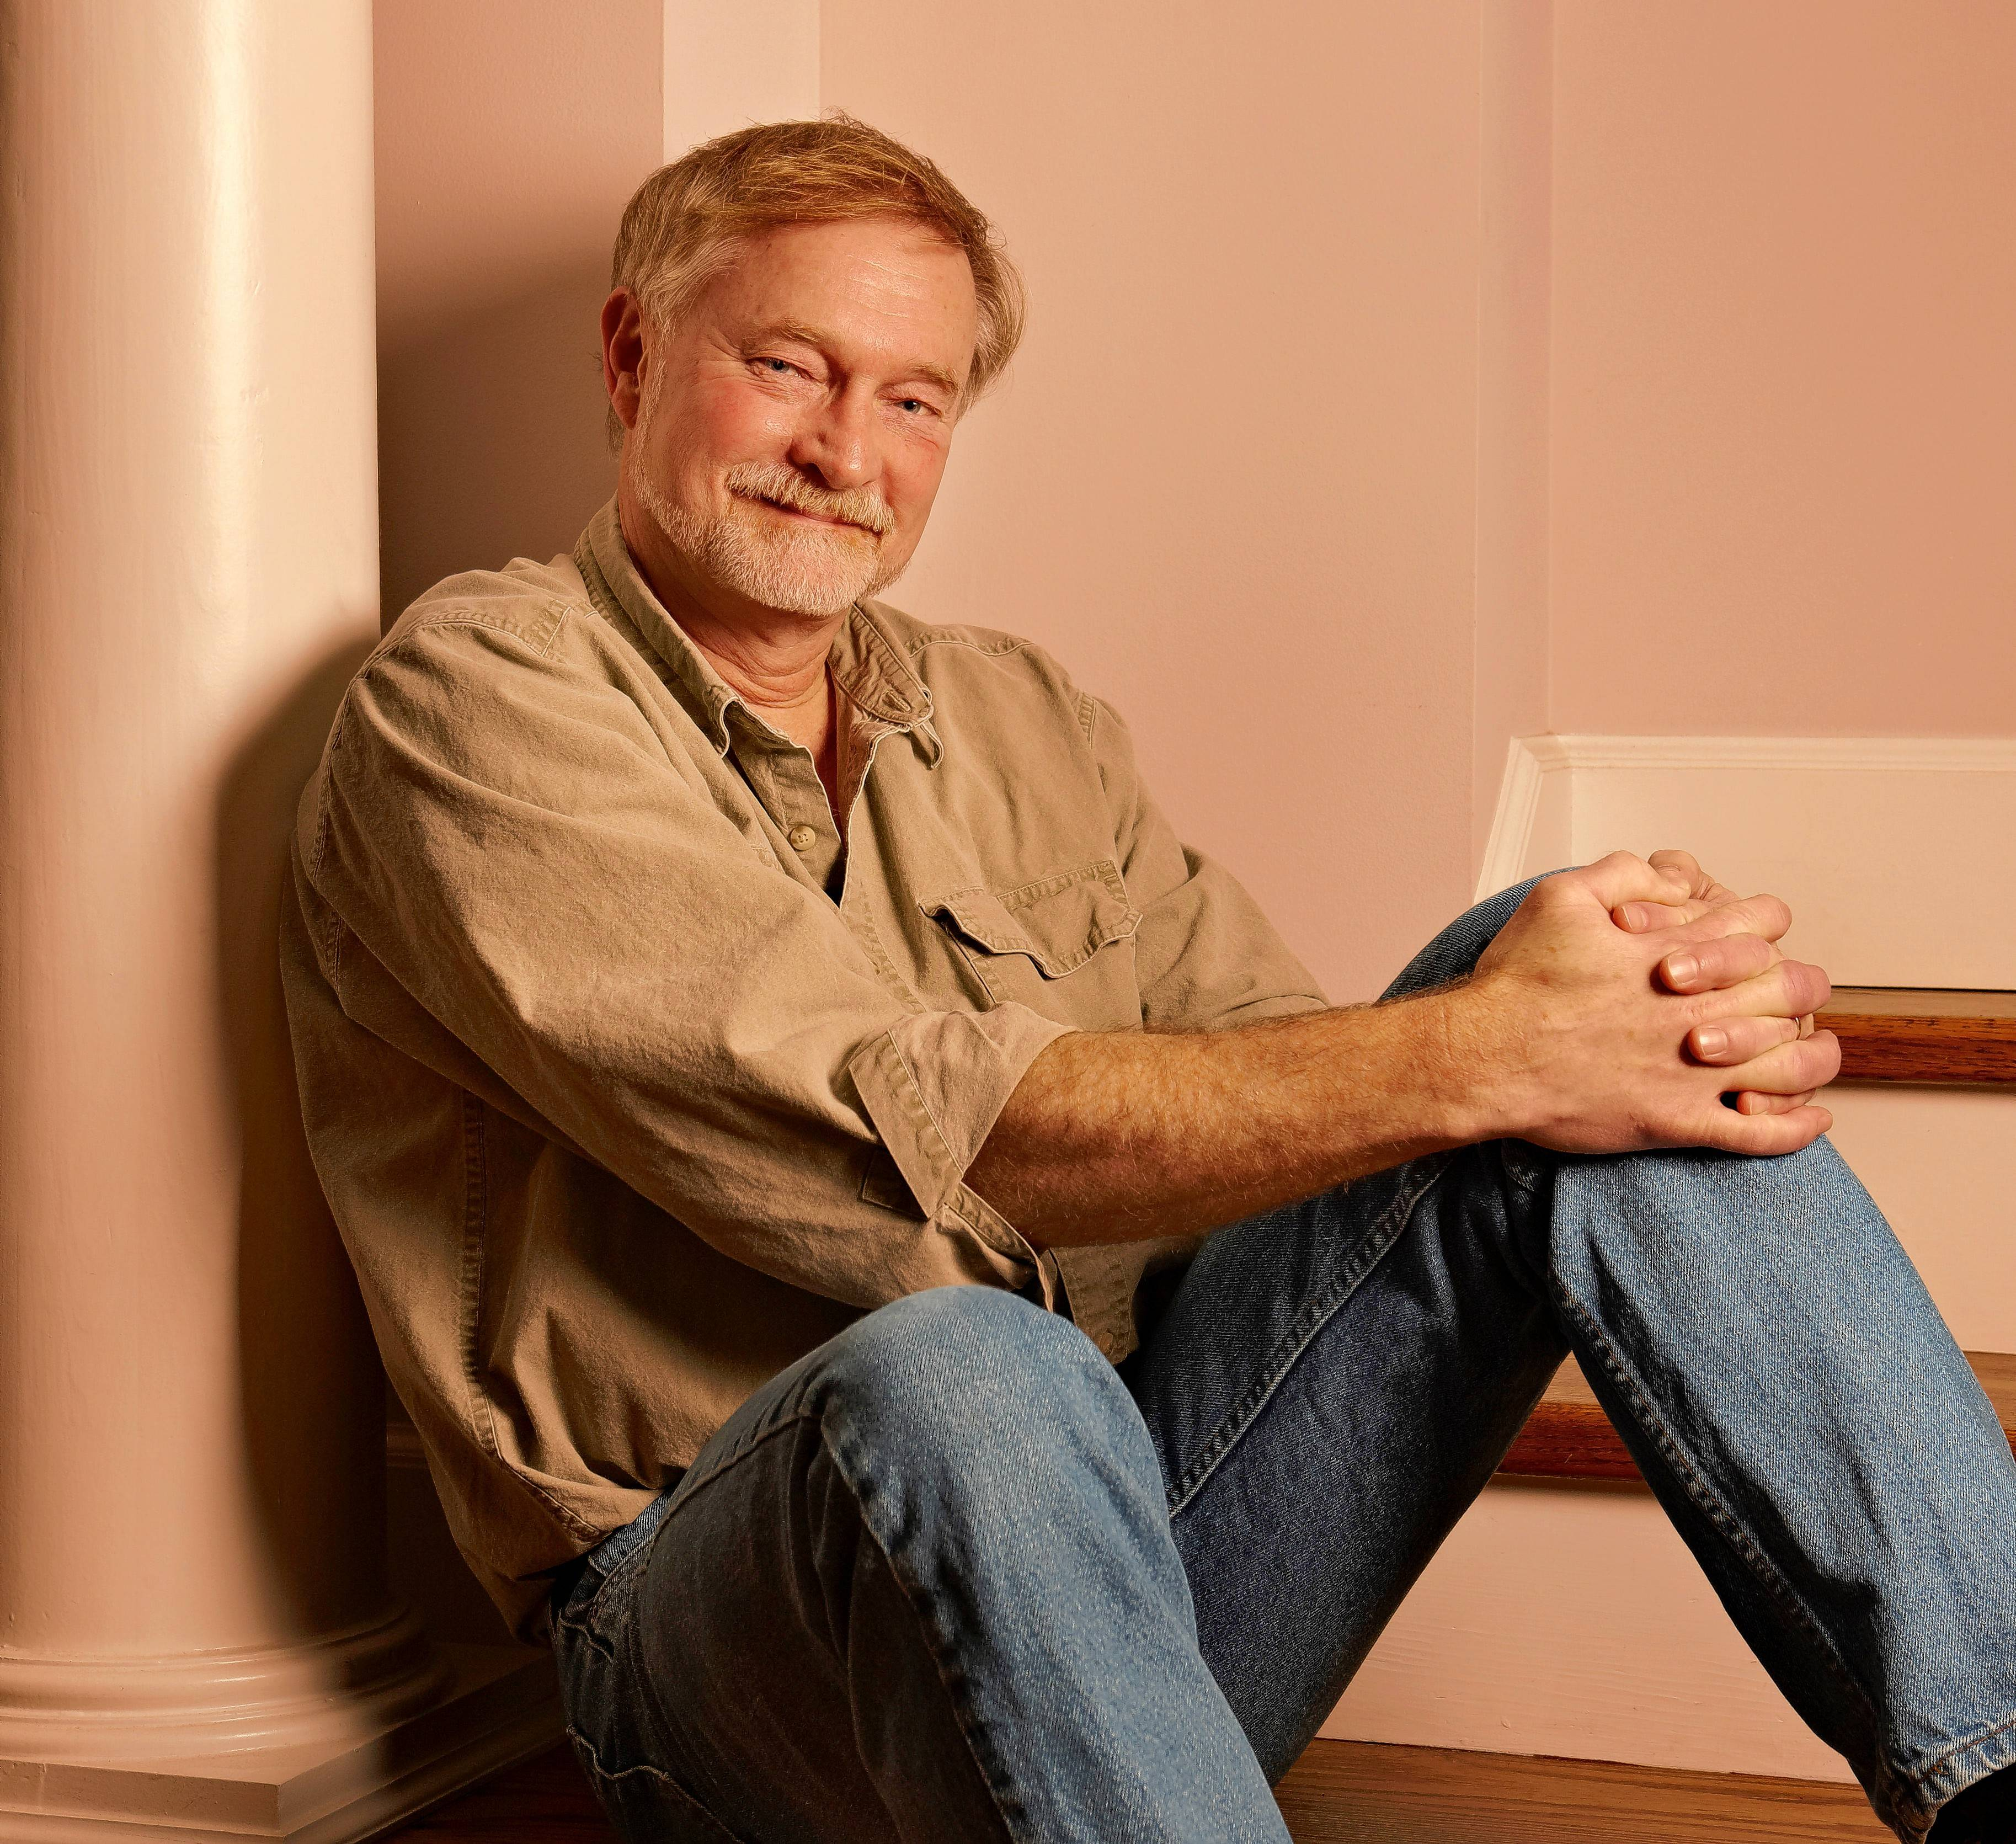 Author Erik Larson will be appearing at the College of DuPage Tuesday evening to discuss his latest book on the sinking of the Lusitania. His appearance is co-sponsored by the Daily Herald.